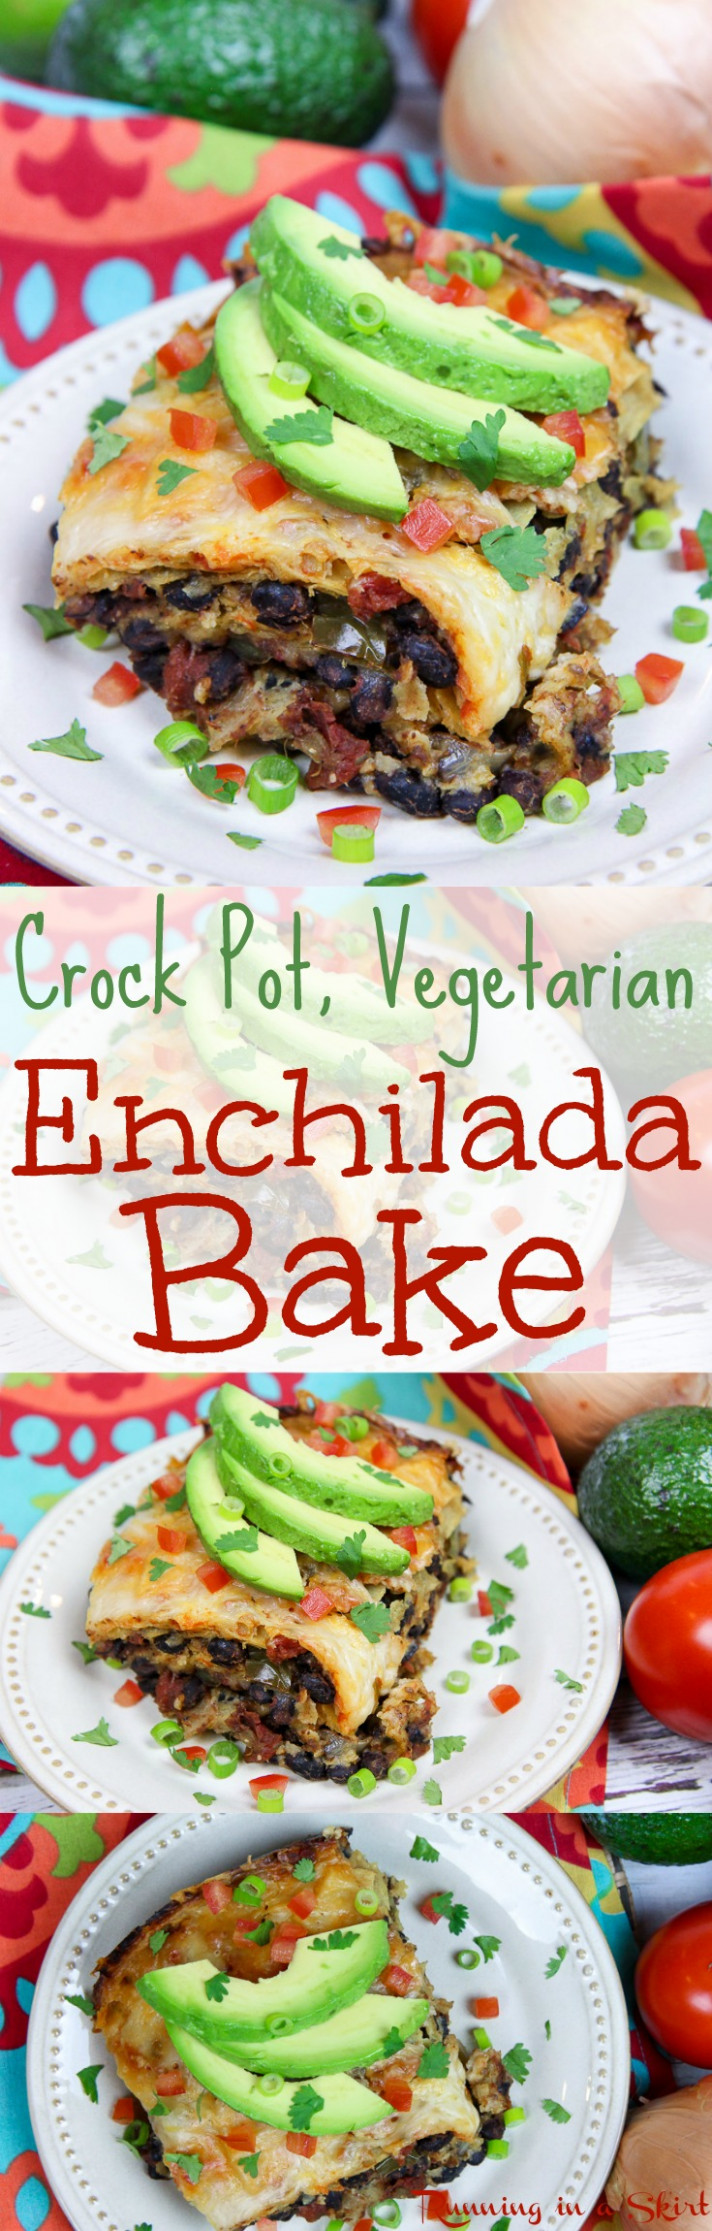 Crock Pot Vegetarian Enchilada Casserole - recipes crock pot vegetarian